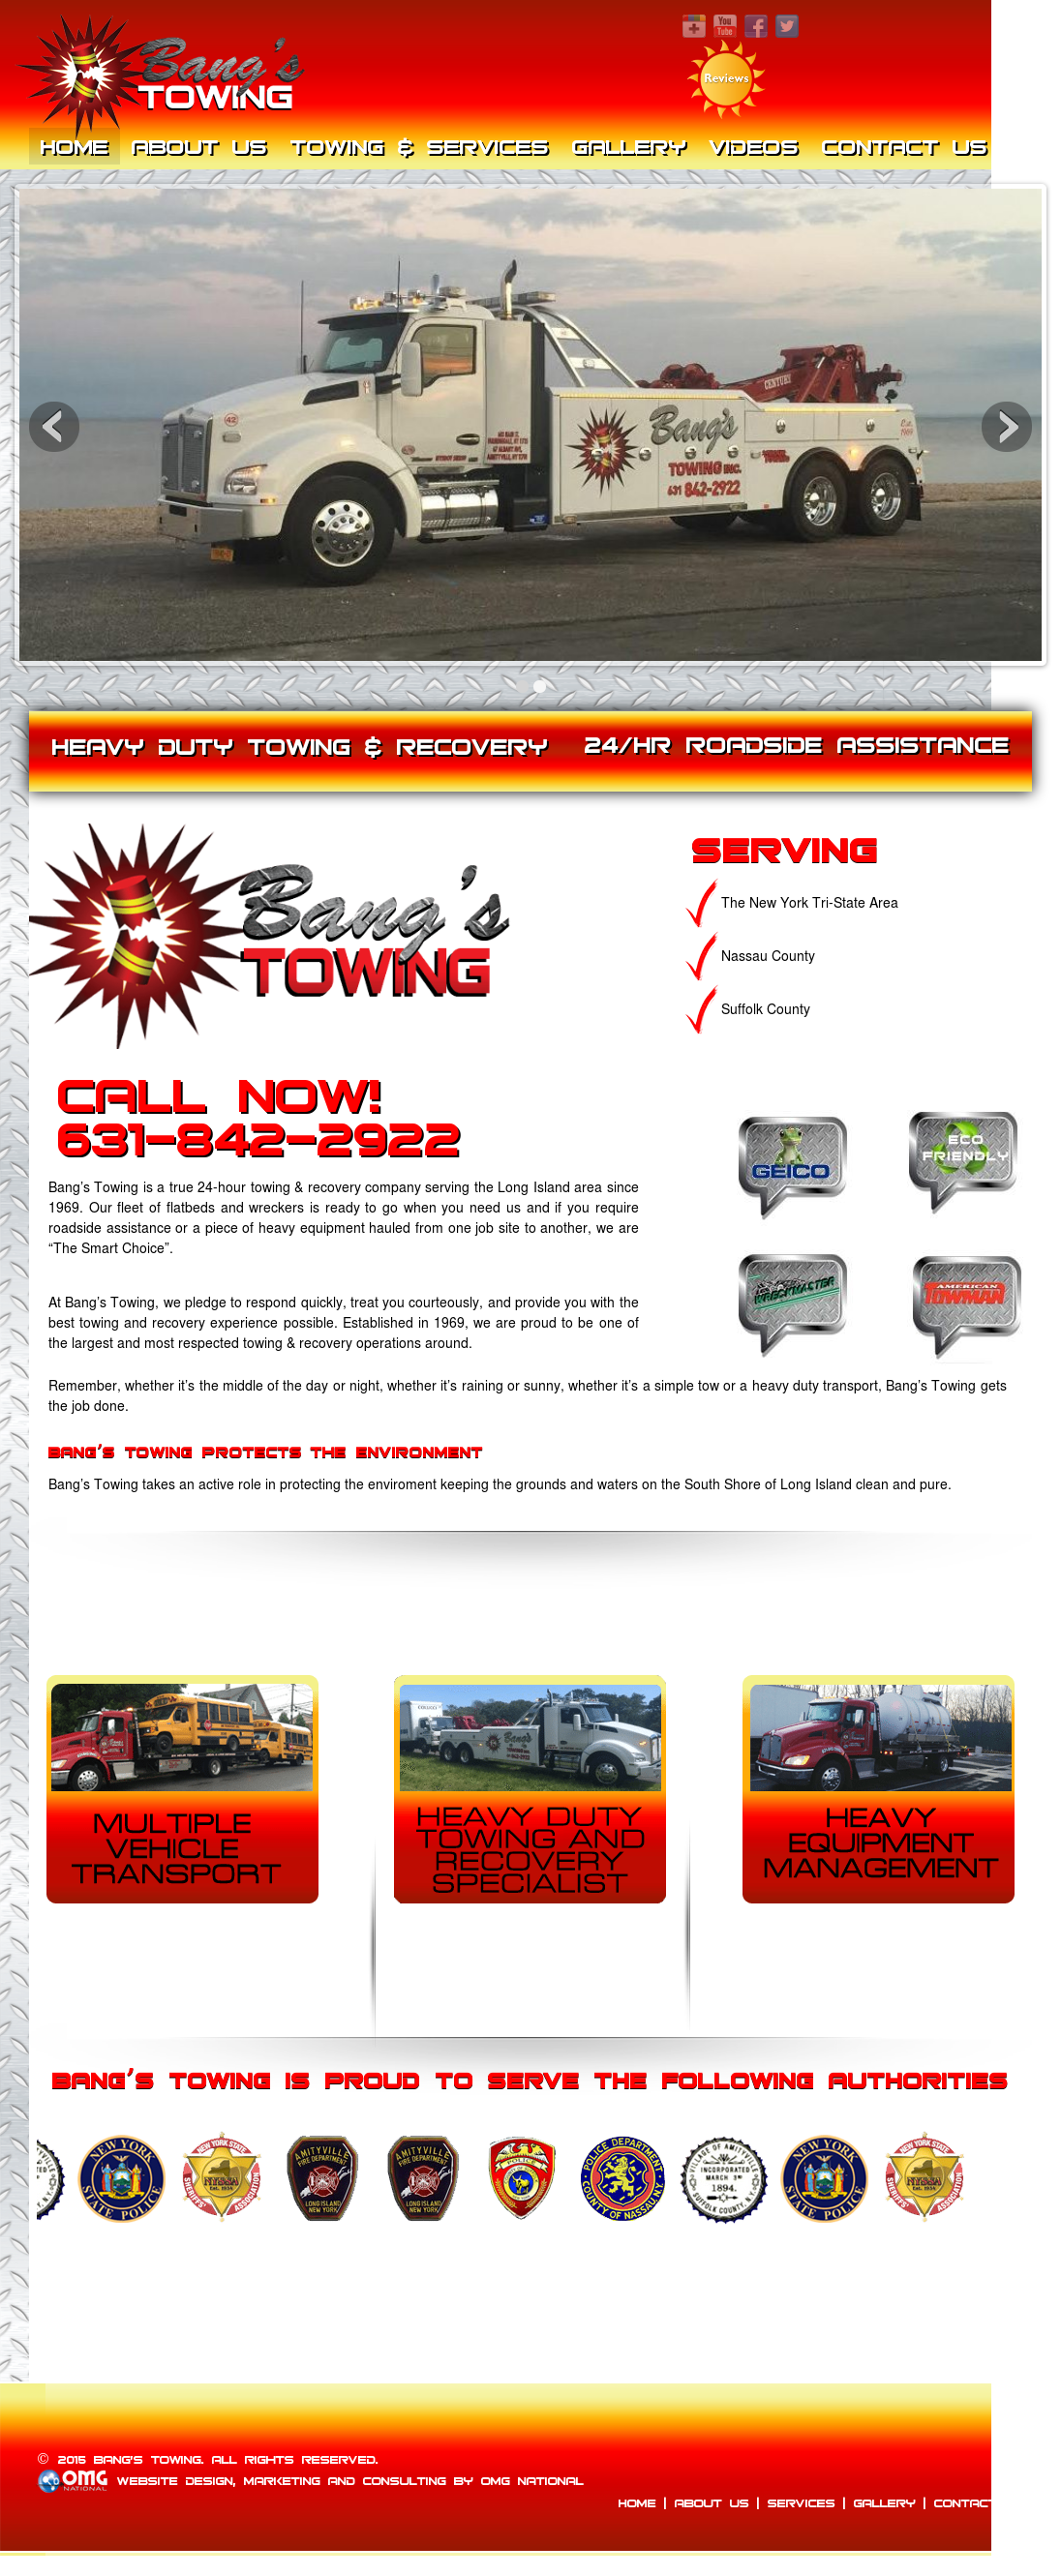 Bangs Towing Competitors, Revenue and Employees - Owler